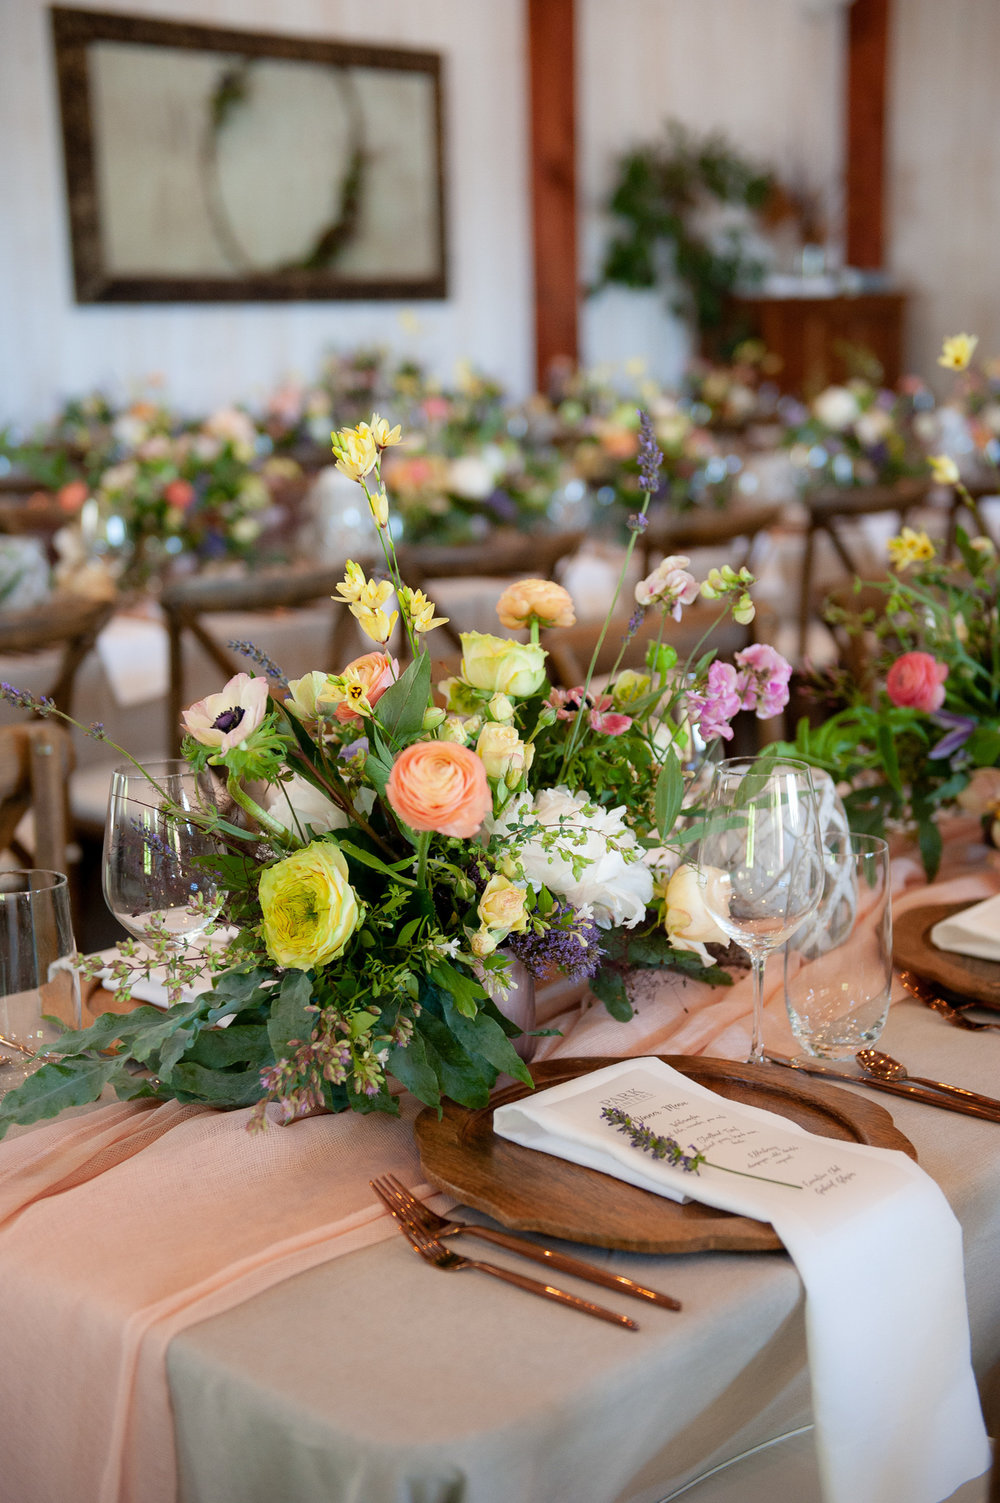 Florals: Dixon Florist Linens: La Tavola Fine Linen Rentals: Theoni Collection Chairs: Celebrations Party Rentals Uplighting: Function45 DJ